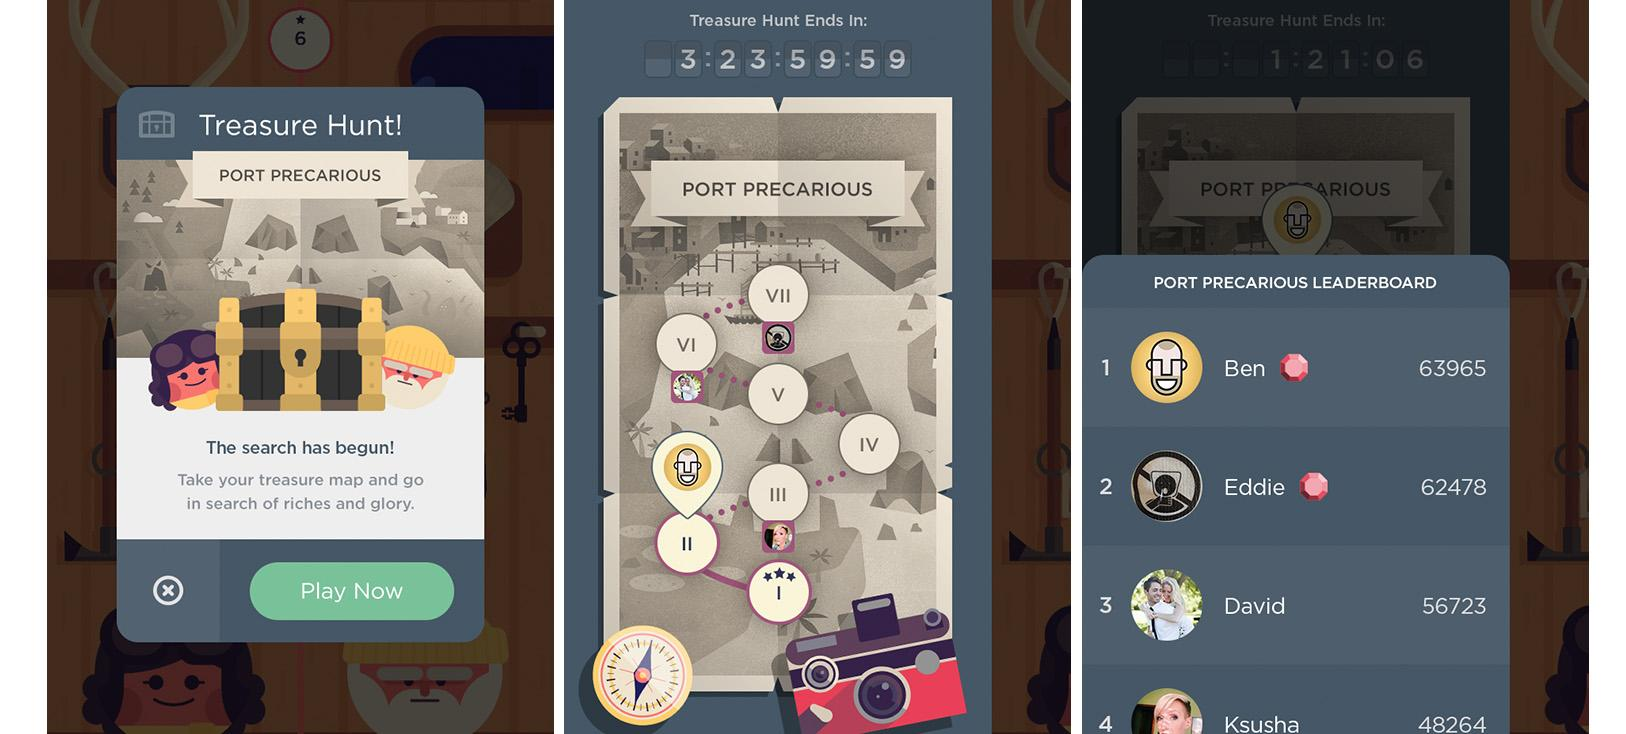 RT @TheNextWeb: Can't get enough of TwoDots? New event feature will bring new levels every week http://t.co/NmwazttLRX http://t.co/x3nLkuKa…